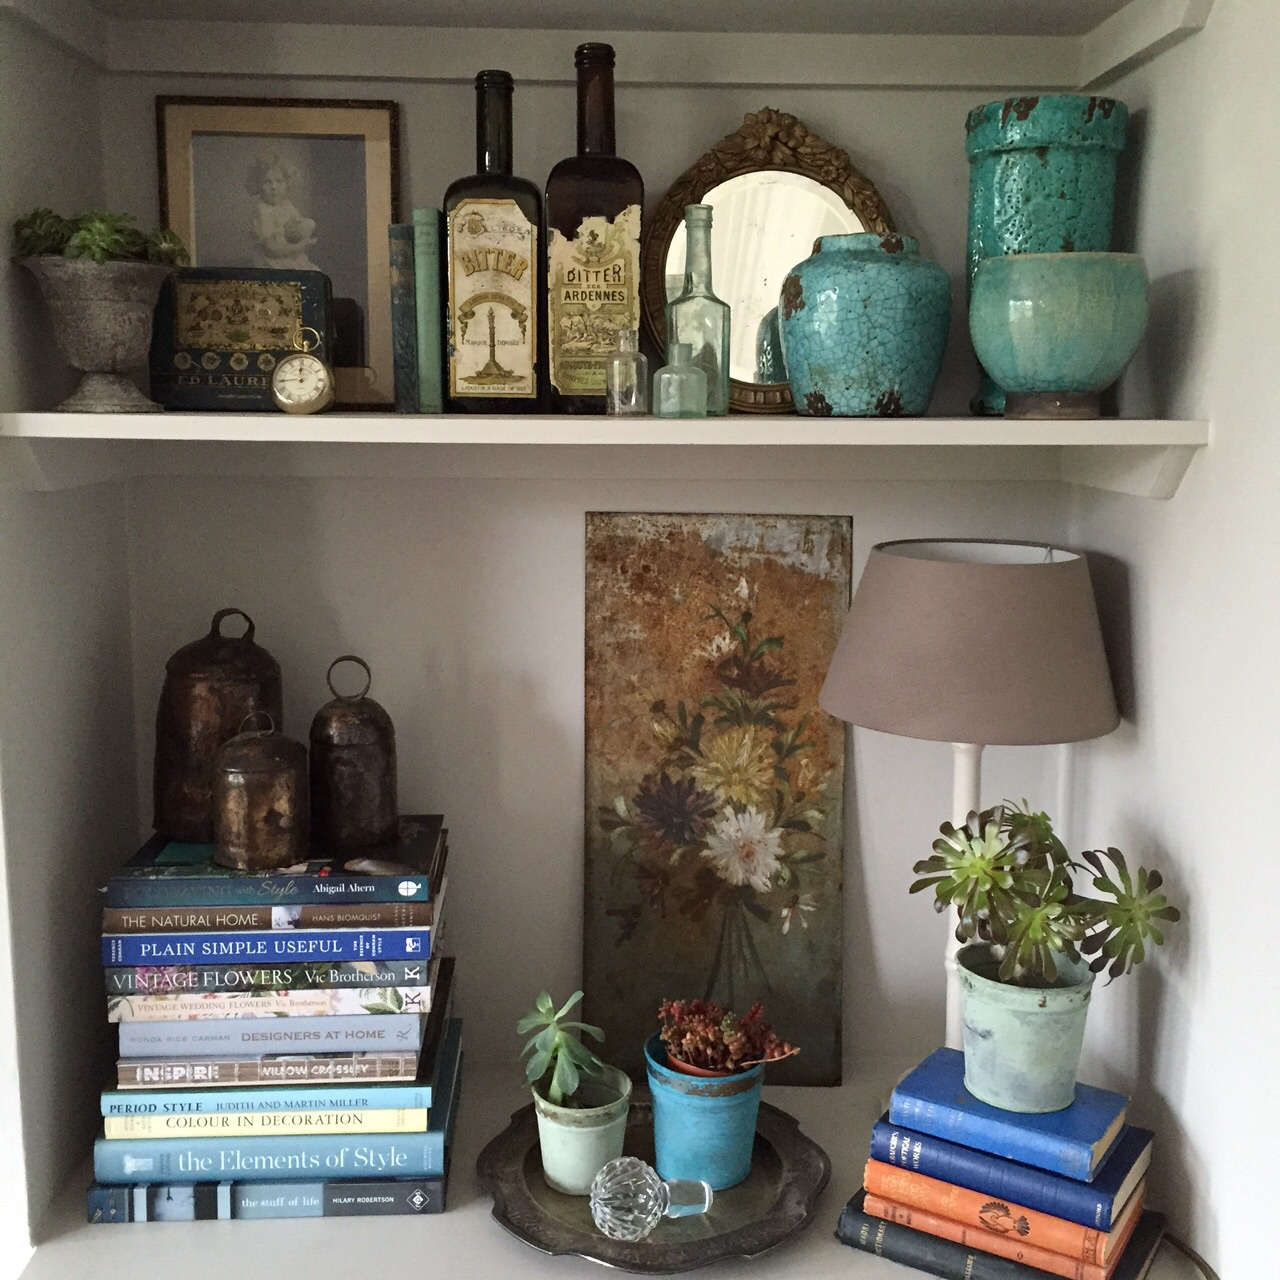 Shelves in my sitting room that I styled with the inspiration from Petersham today!